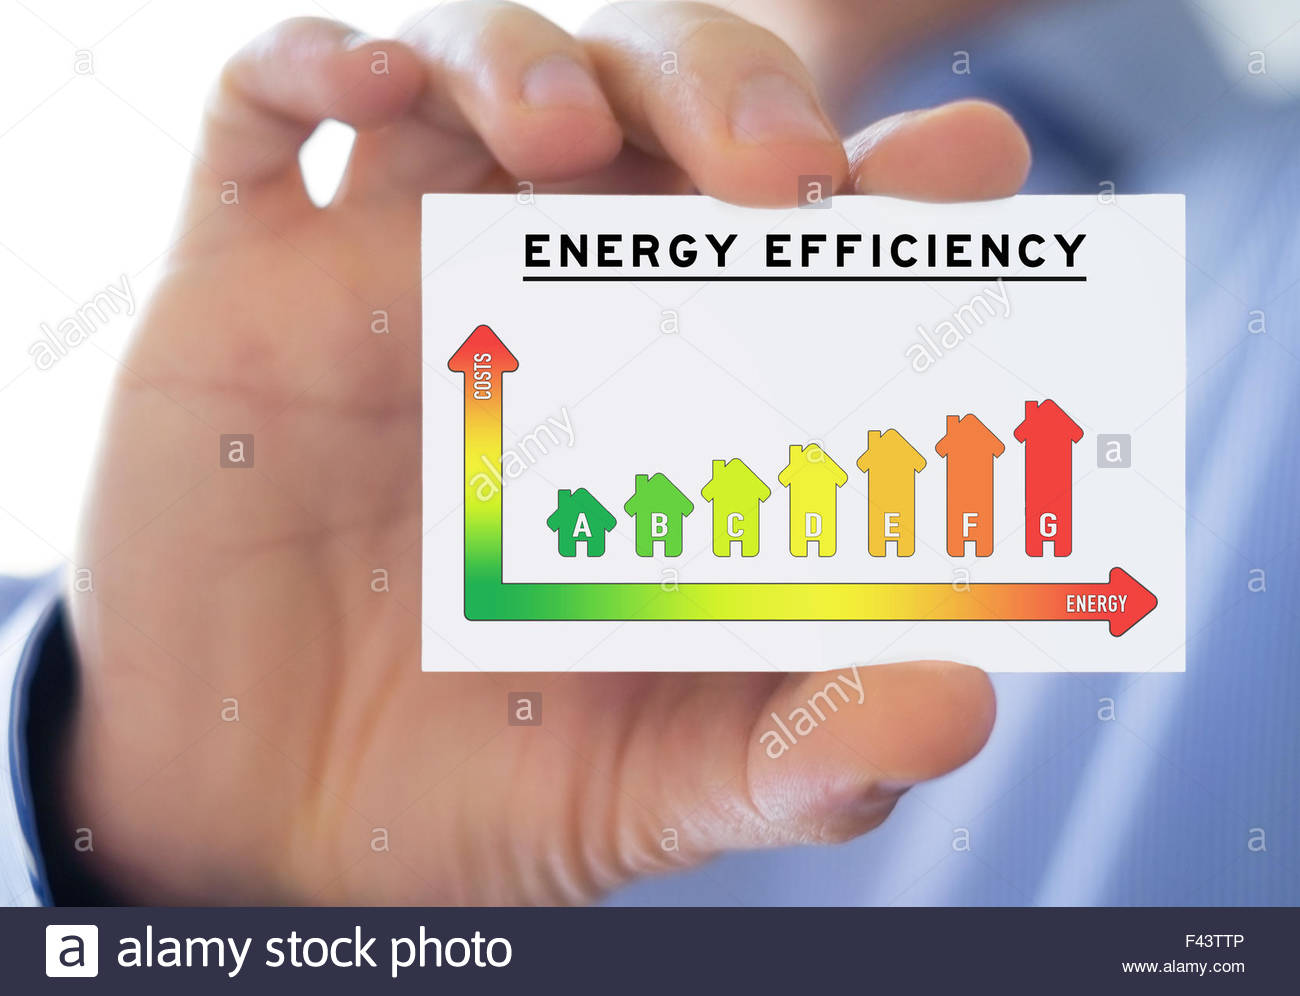 Energy efficiency - business card Stock Photo